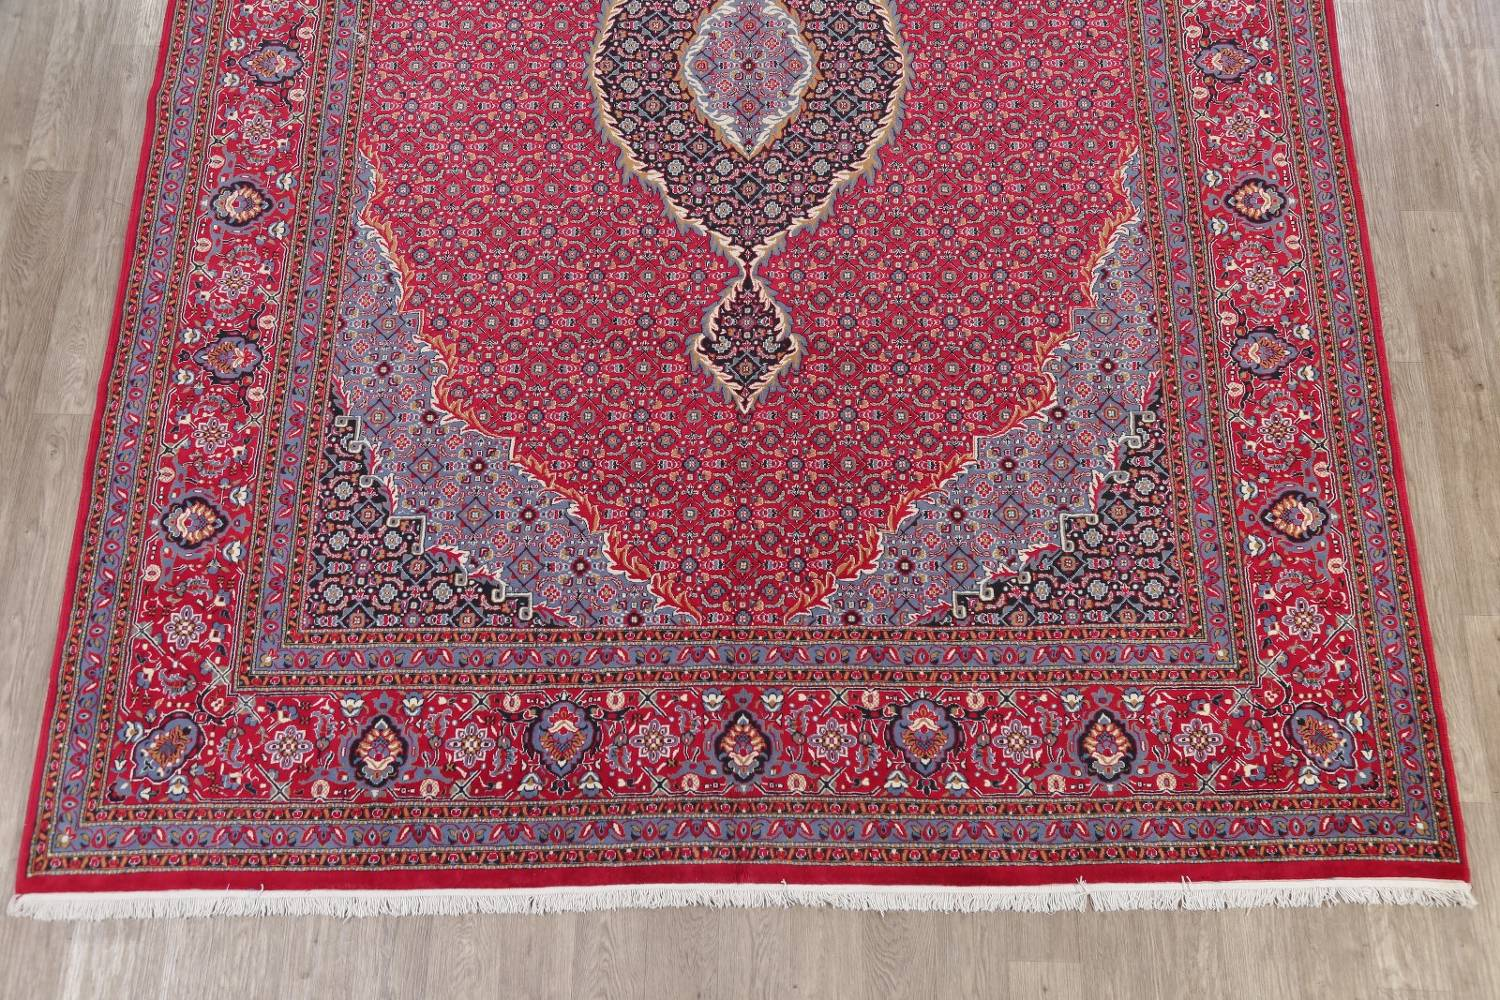 Soft Pile Floral Tabriz Persian Style Area Rug 10x13 image 5